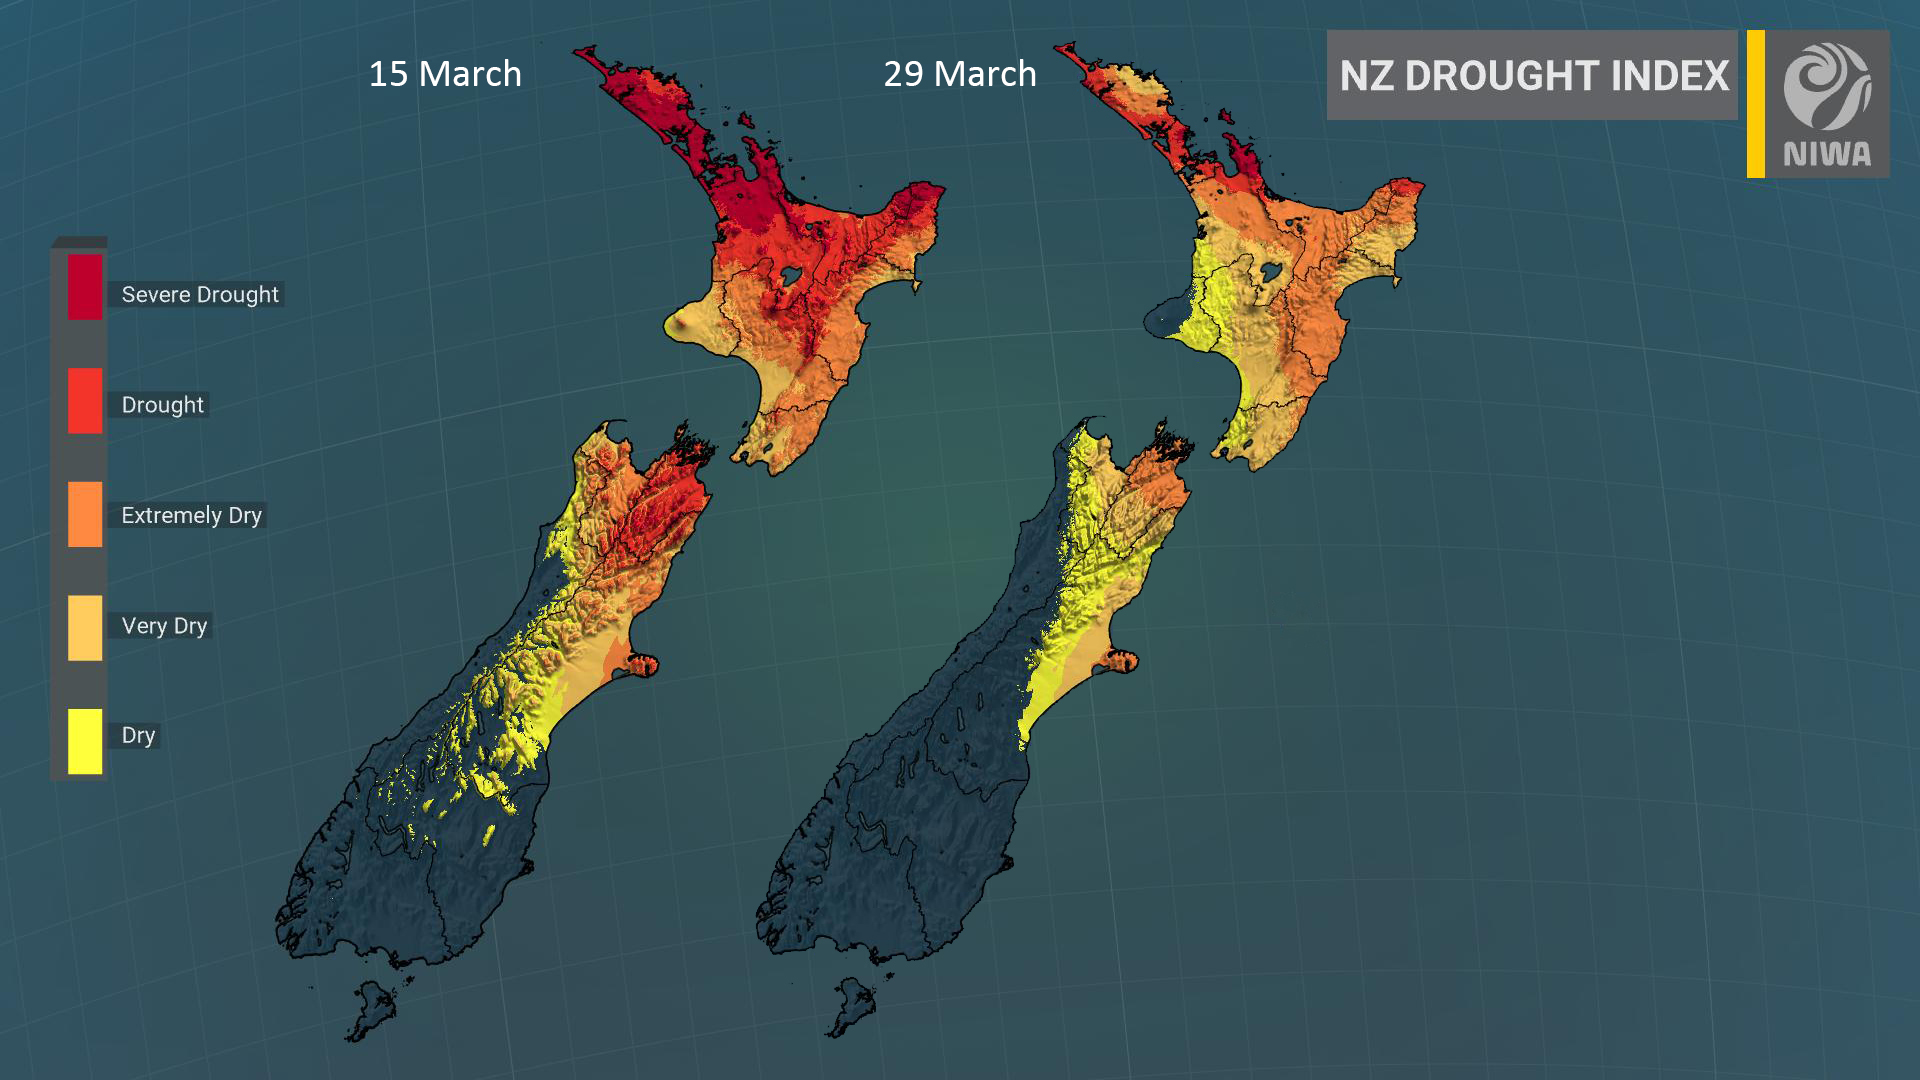 Good news: dryness is easing across the lower North Island and upper South Island     However, meteorological drought continues in Northland, Auckland, and north Waikato & Coromandel Peninsula.    April monthly rainfall is projected to be near or below normal in these regions. https://t.co/DDdYu8p8dQ